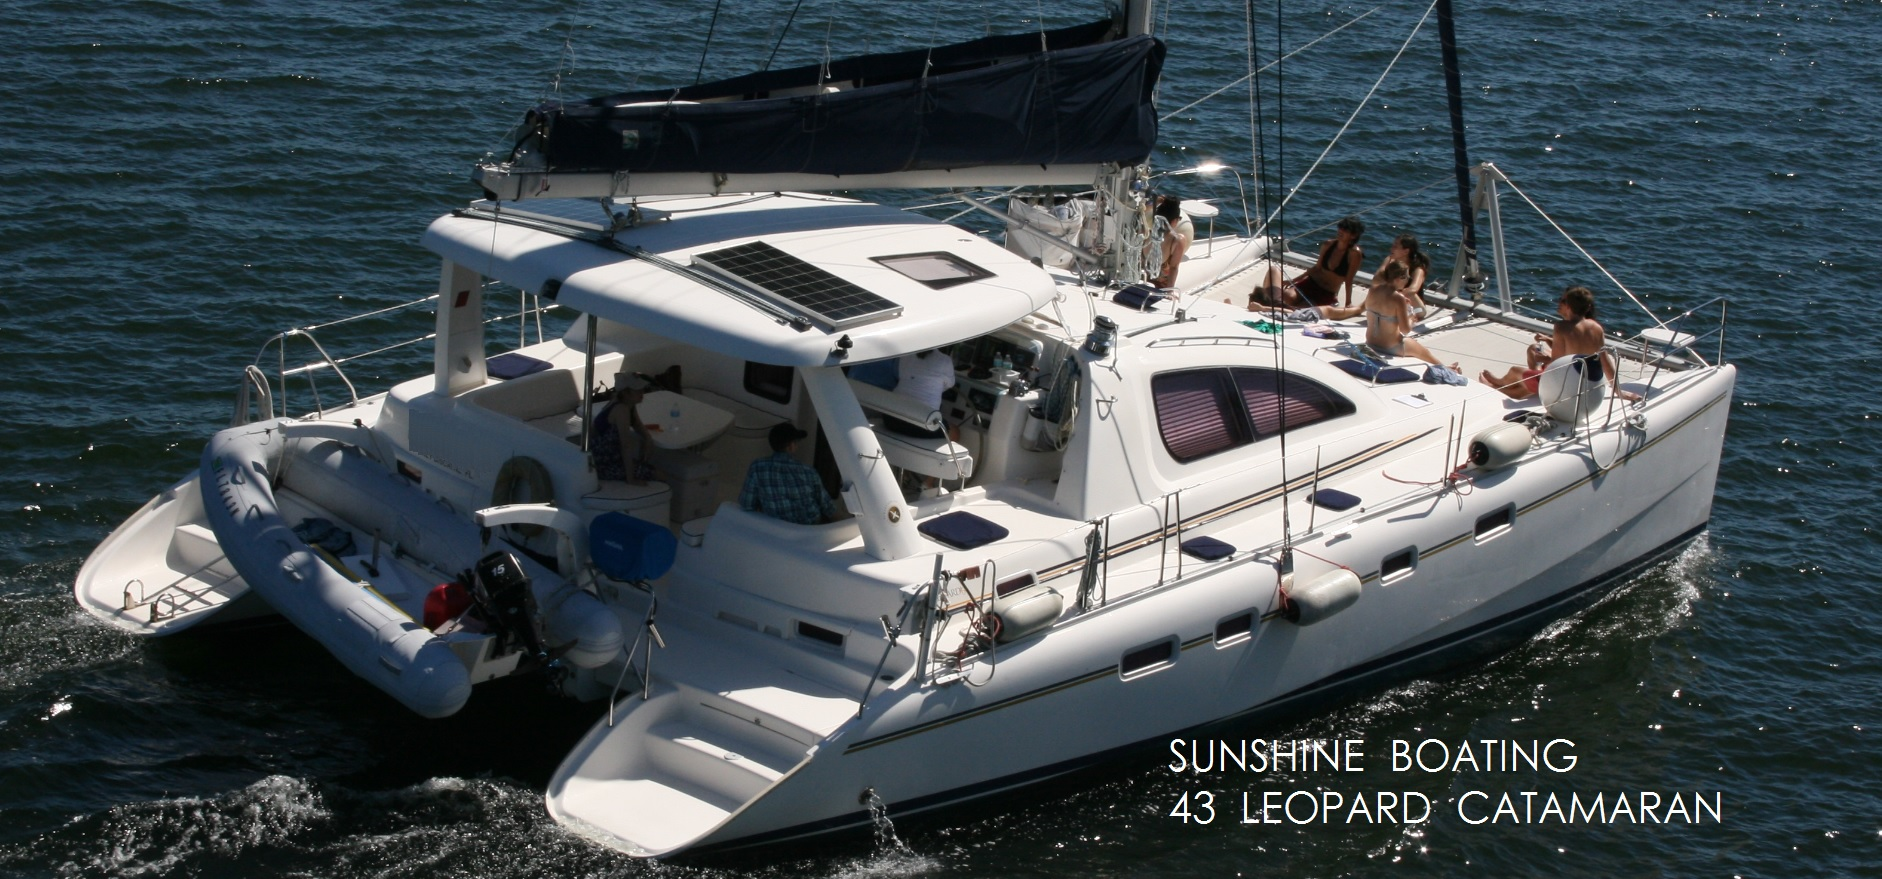 sunshine-boating-43-leopard-cat-a